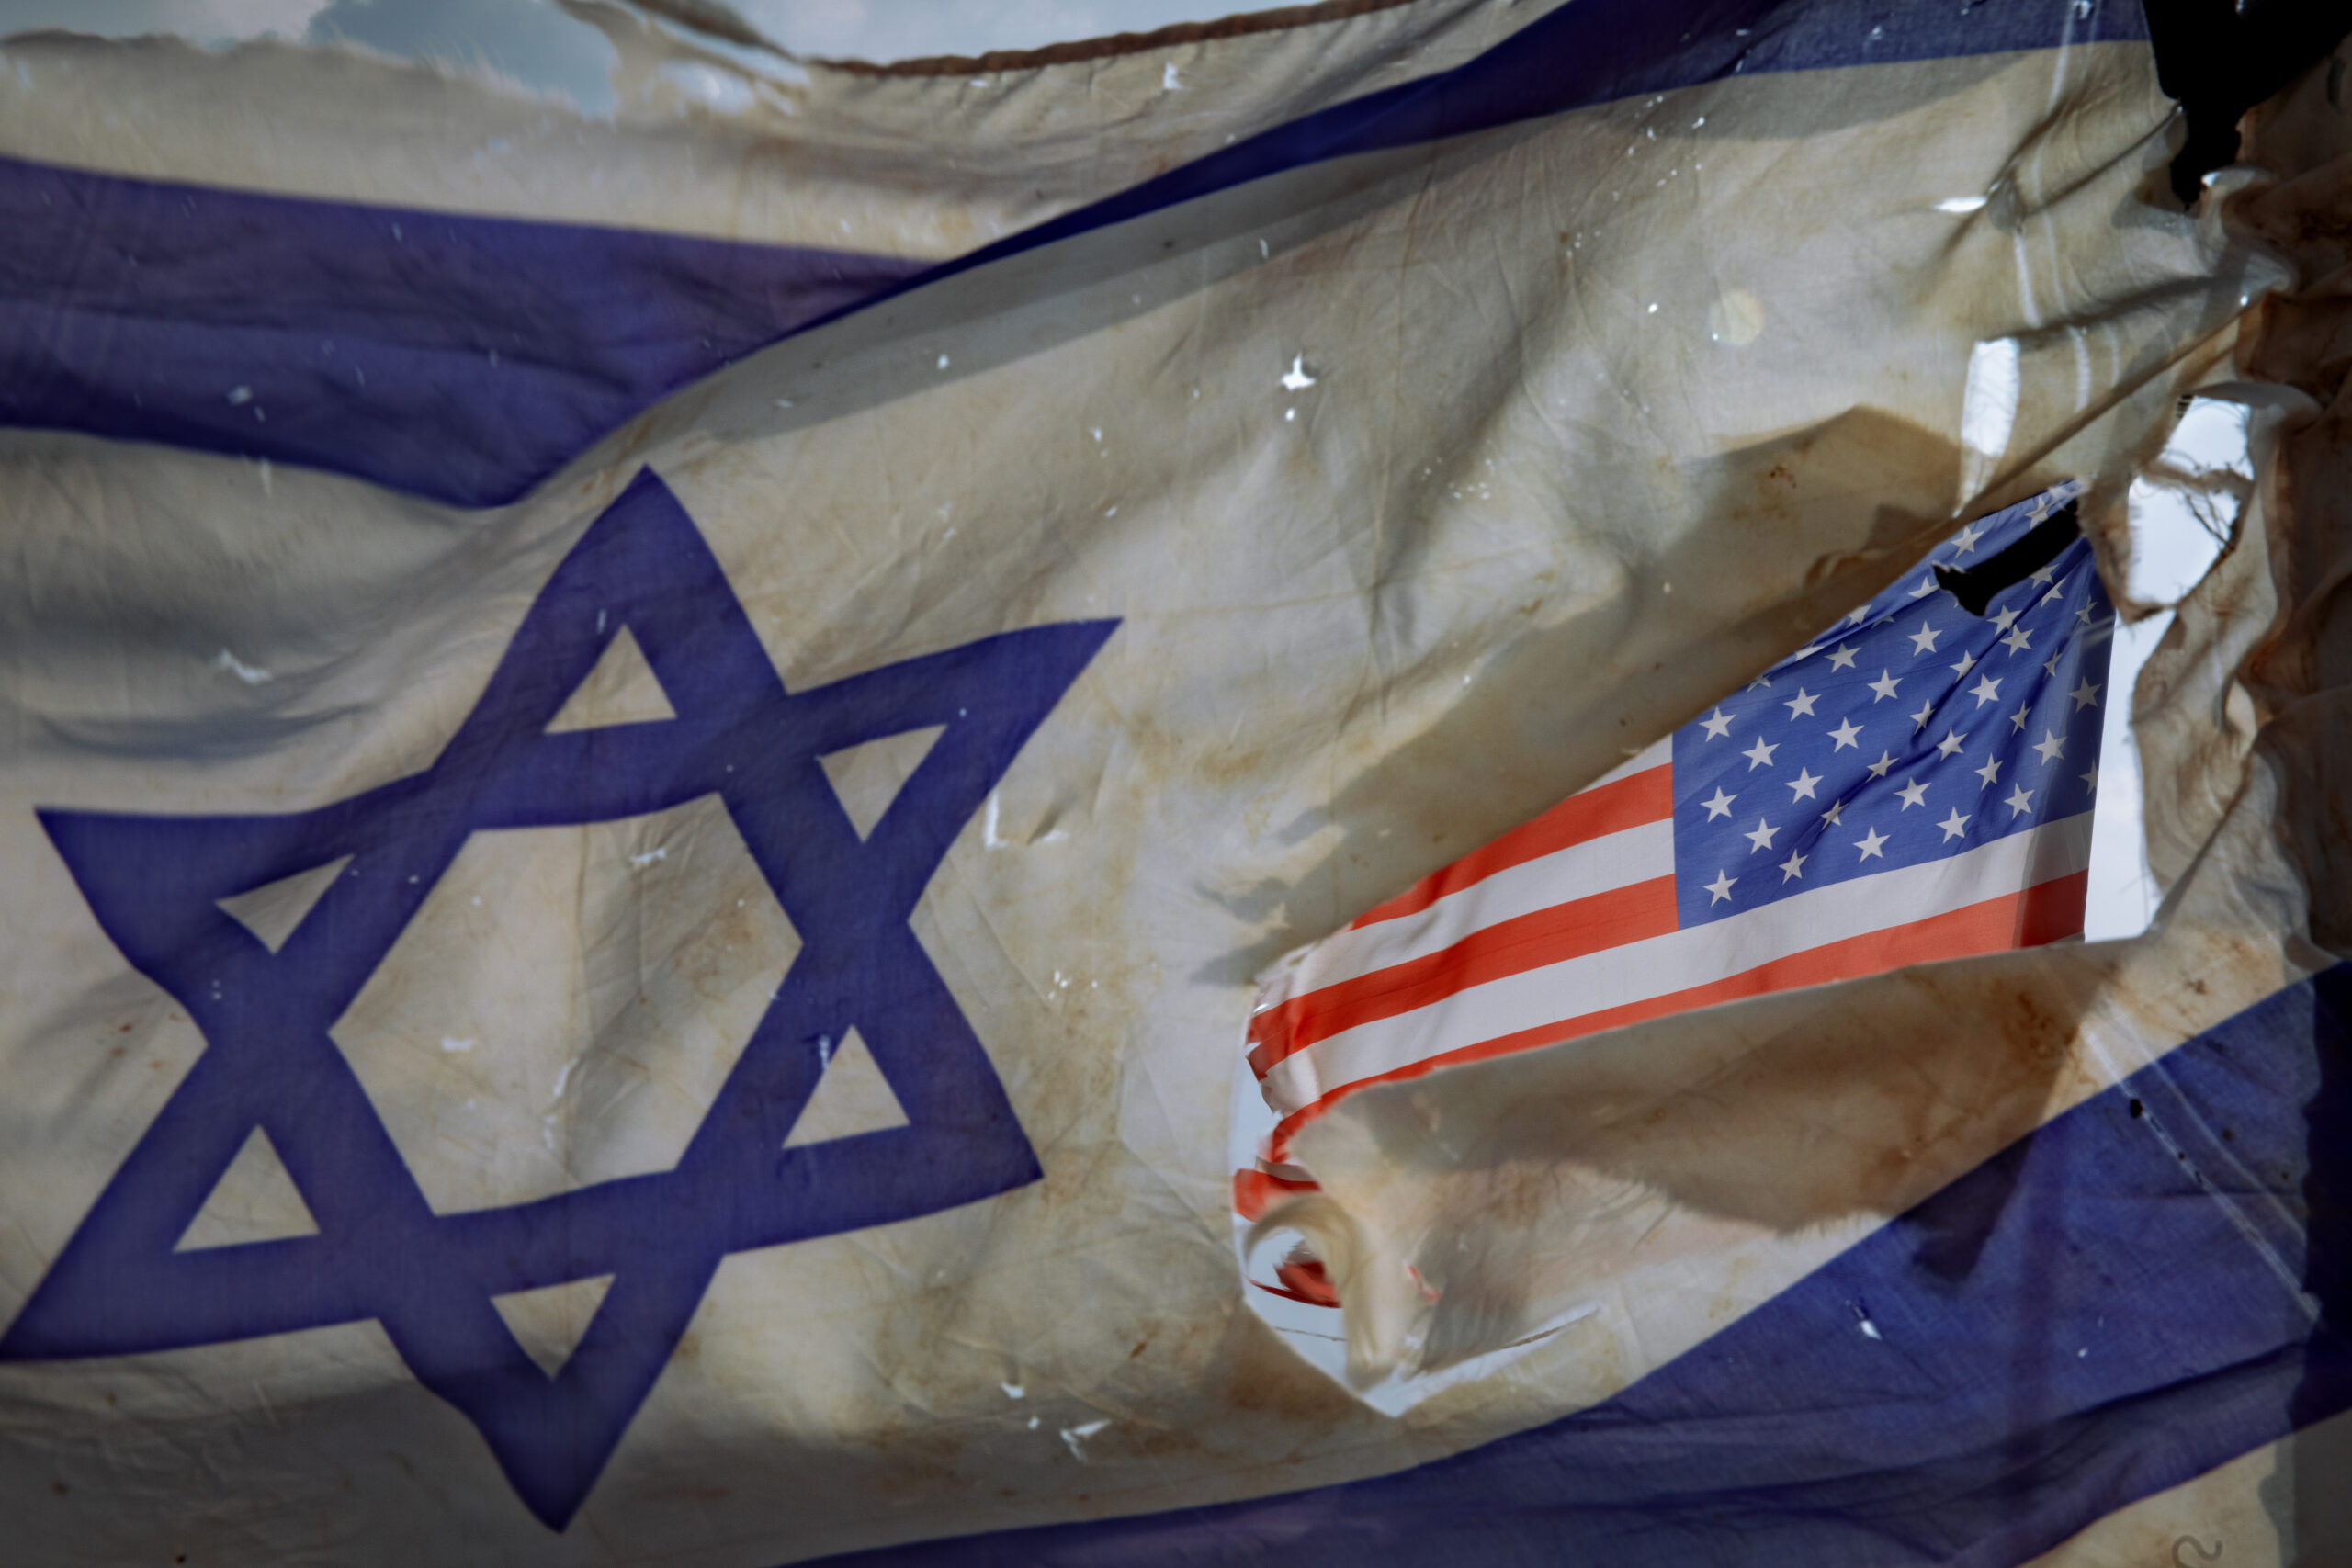 Why do Chinese investments in Israel worry the United States